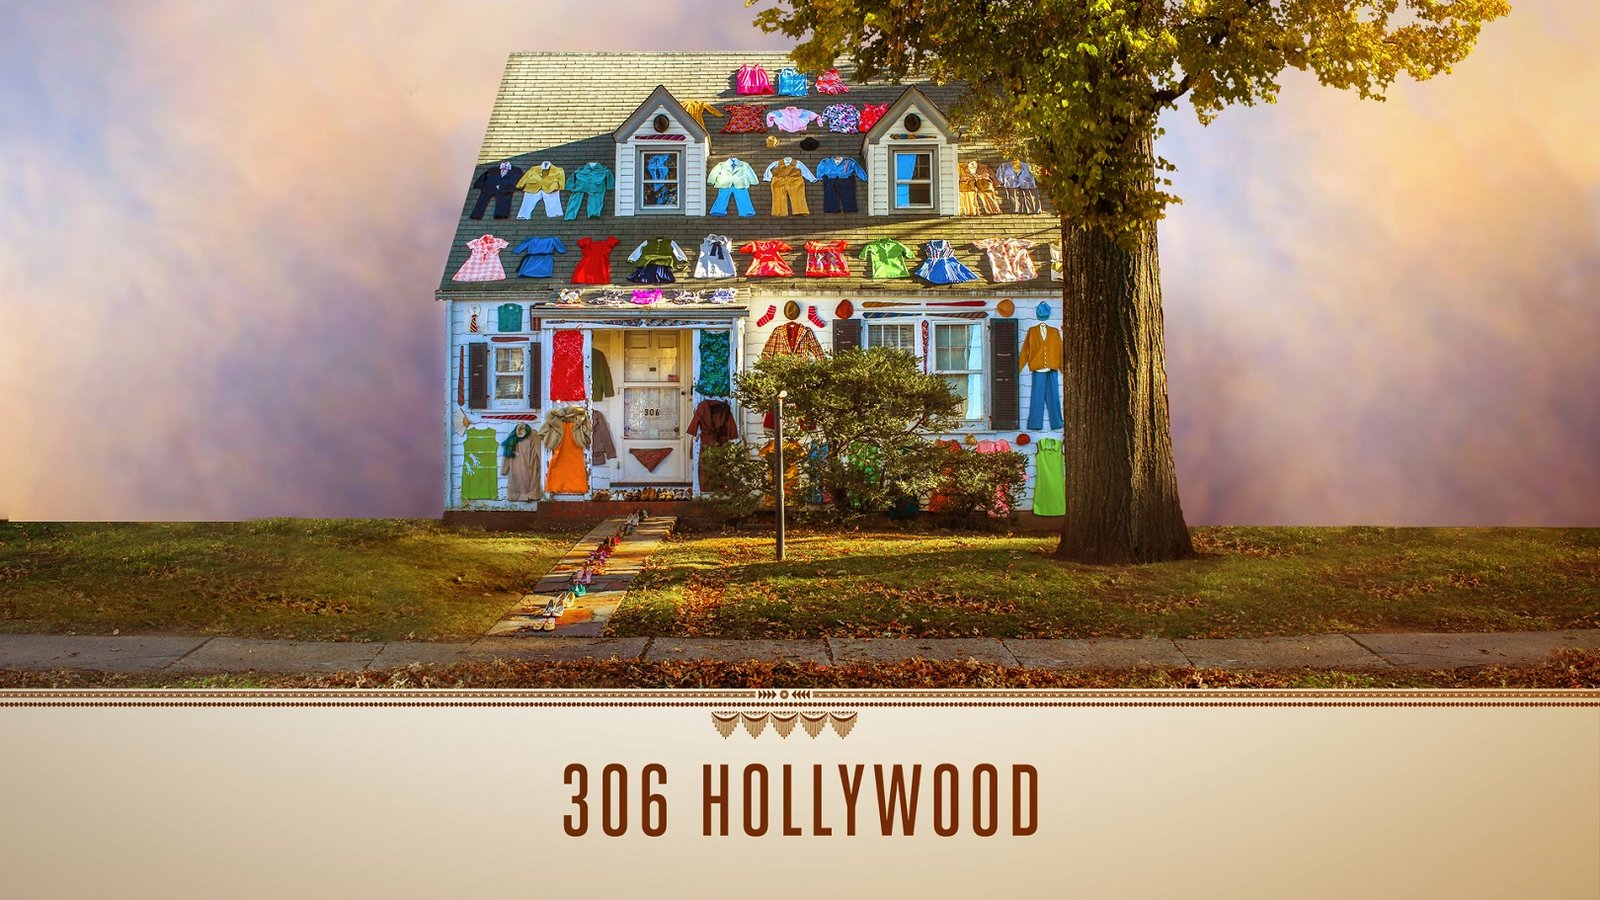 306 Hollywood - What Life Remains in the Objects we Leave Behind